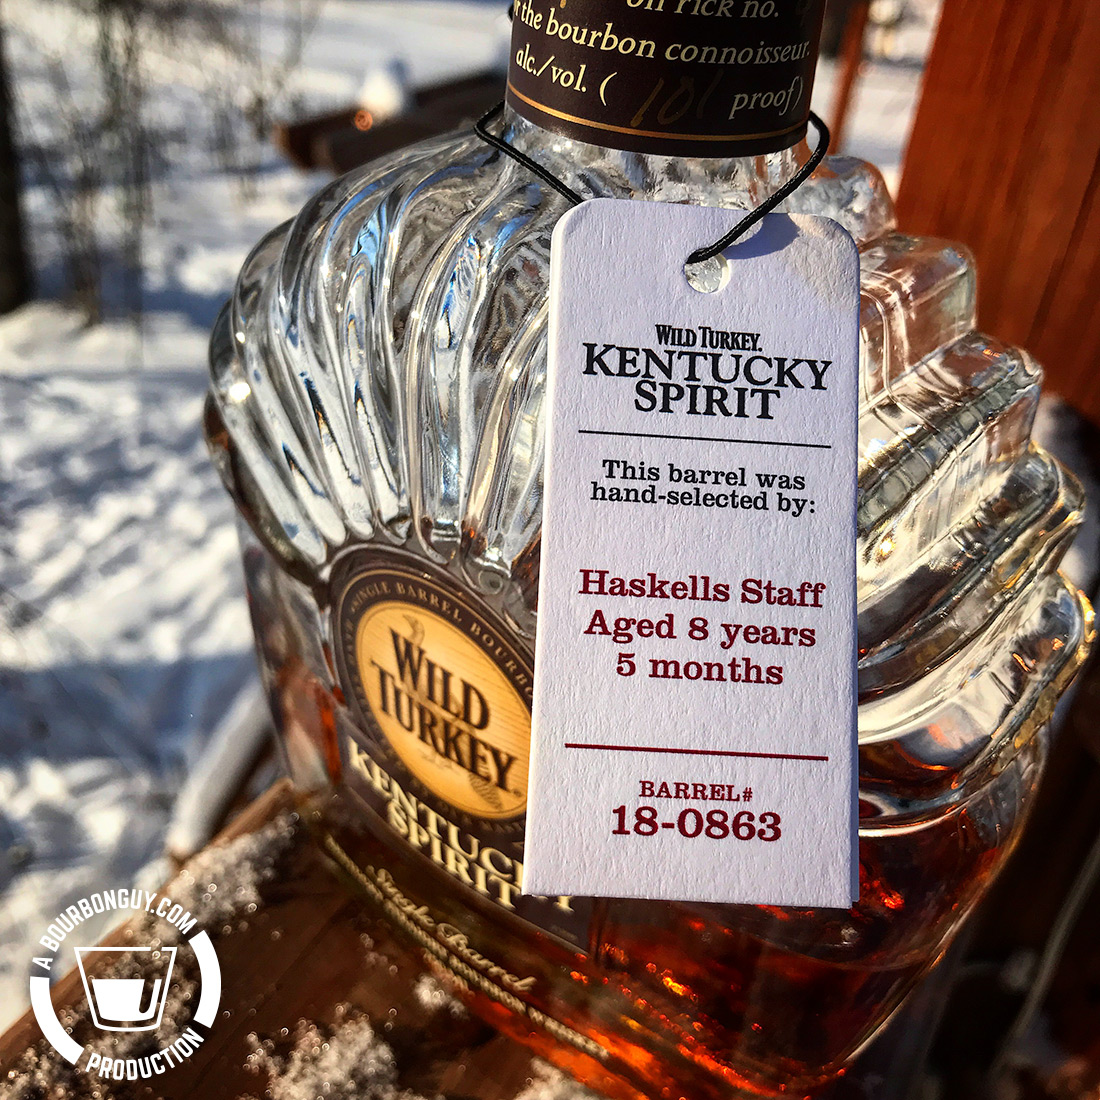 IMAGE: Neck tag hanging from a bottle of Wild Turkey Kentucky Spirit. Tag states the bourbon was aged 8 years and 5 months.